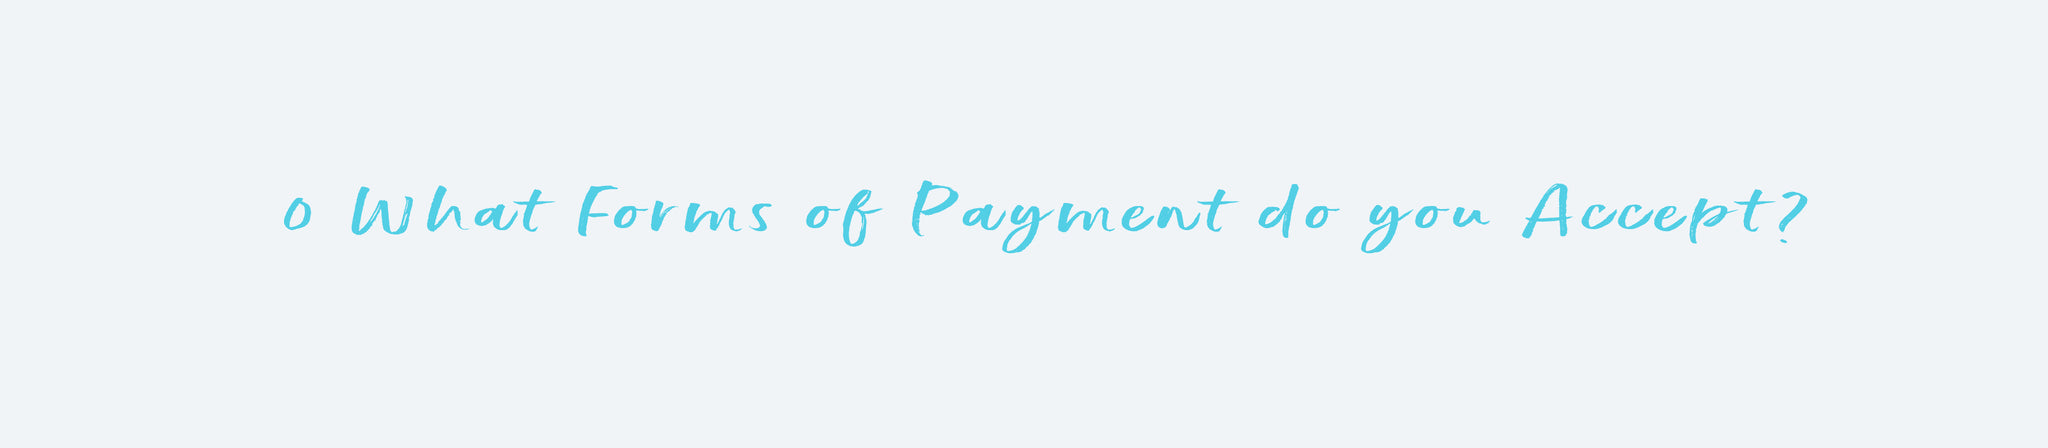 FAQ Payments Accepted SeaHouse Imagery